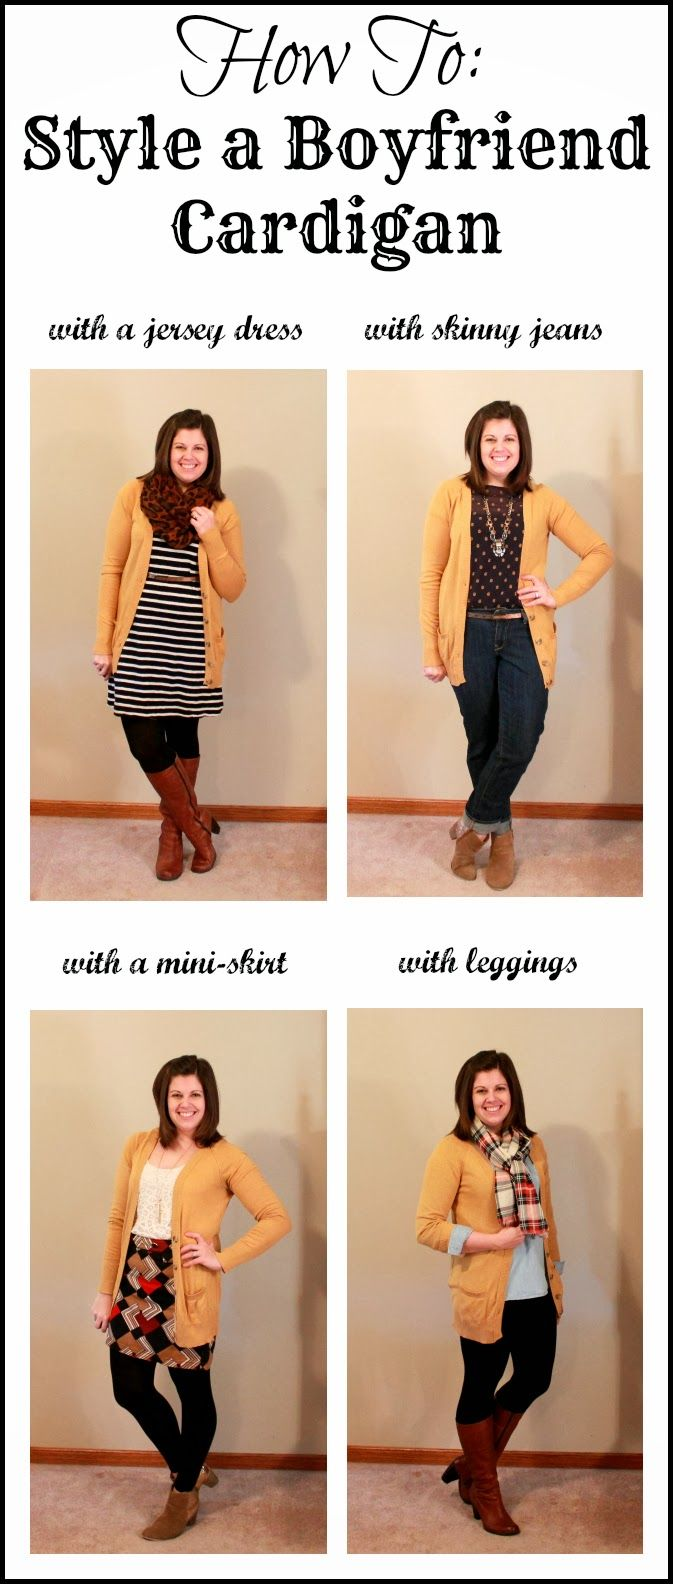 How To: Style a Boyfriend Cardigan - My New Favorite Outfit